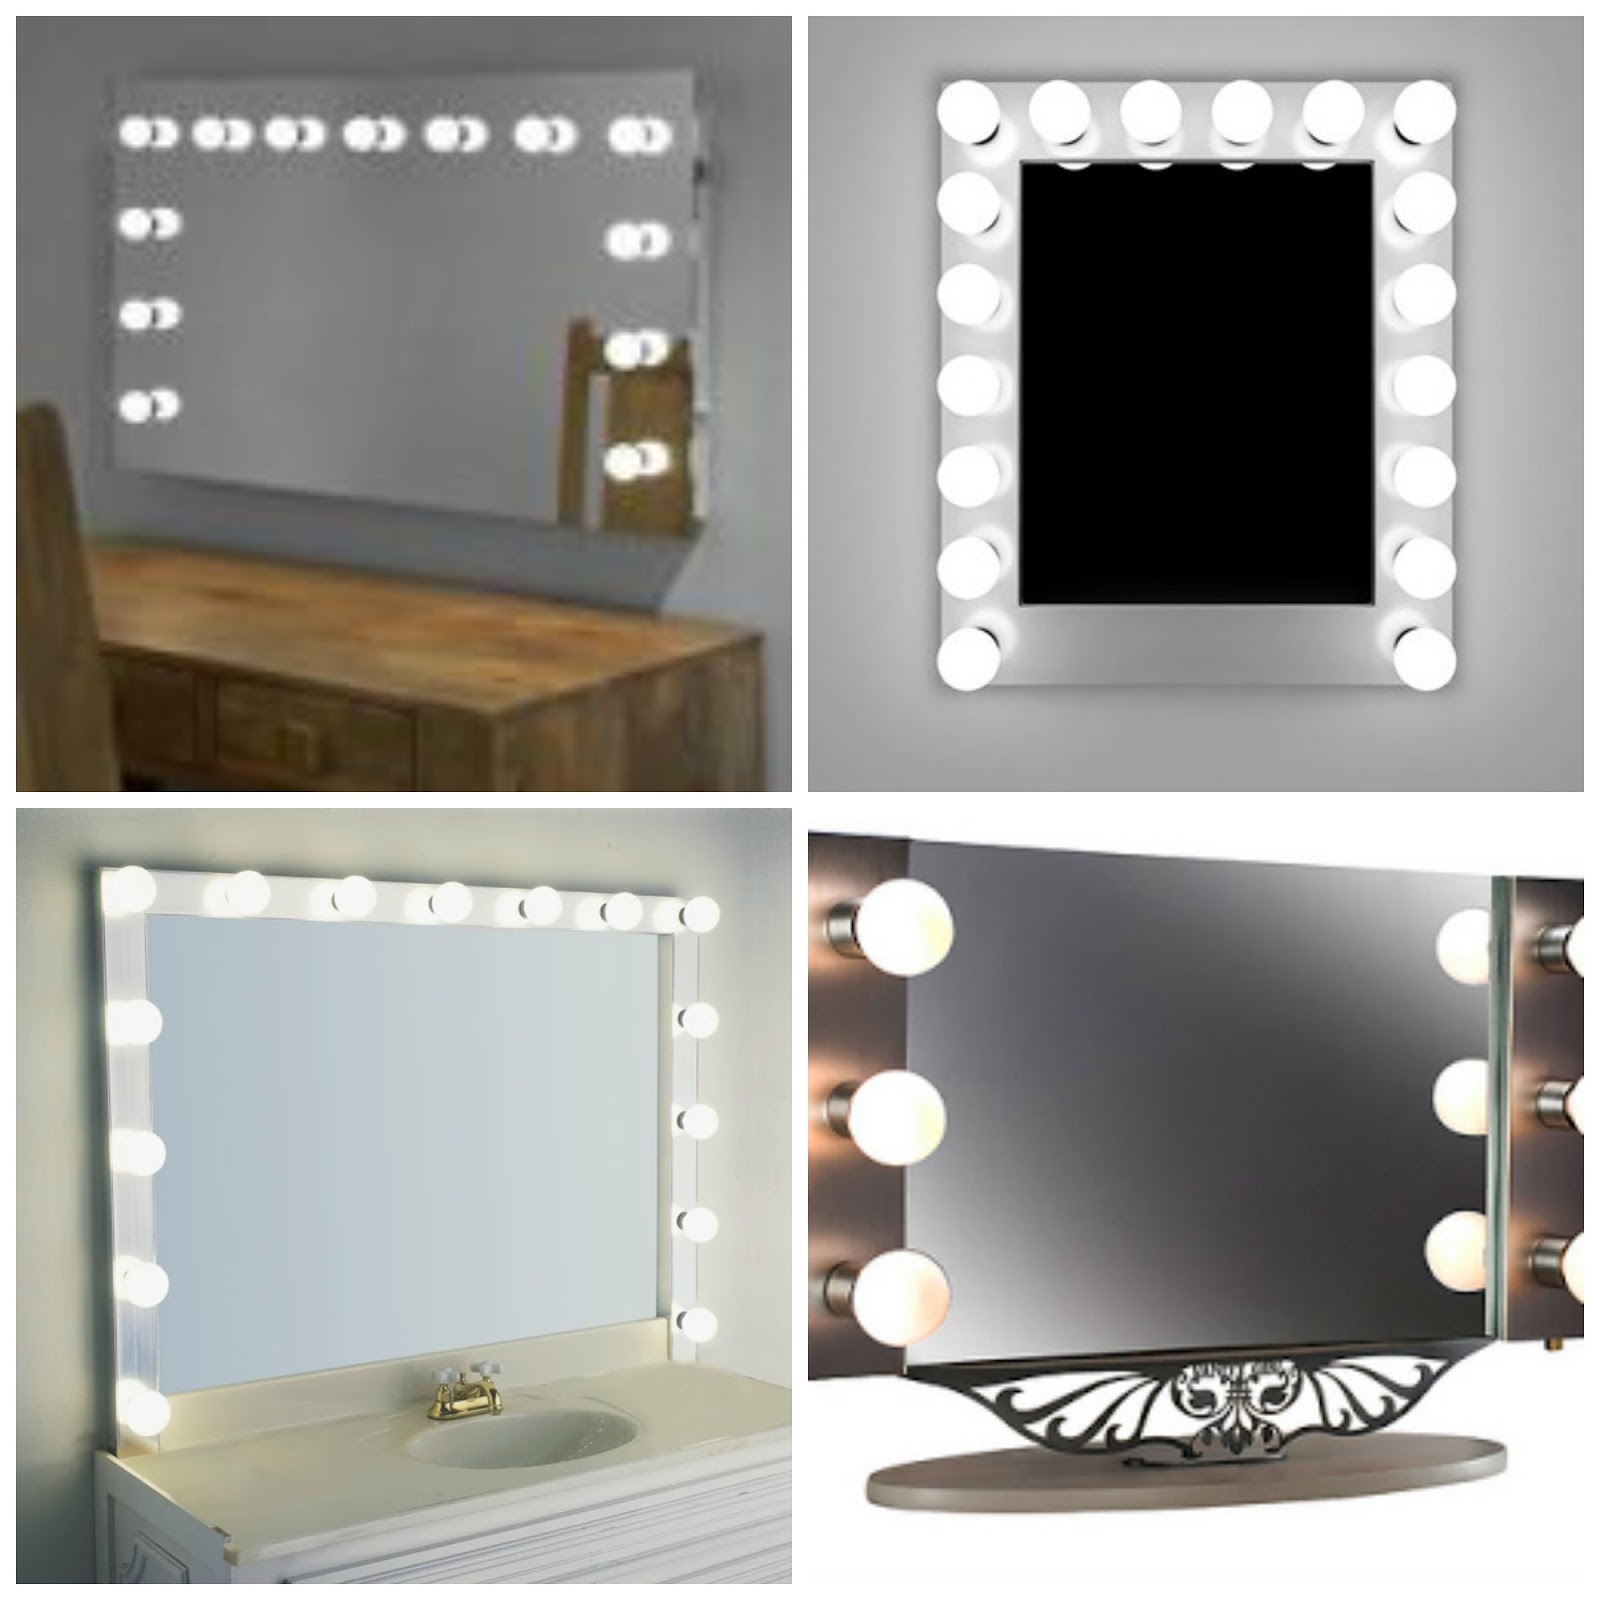 Vanity Mirror Table With Lights Harpsoundsco With Regard To Illuminated Dressing Table Mirrors (Image 14 of 15)